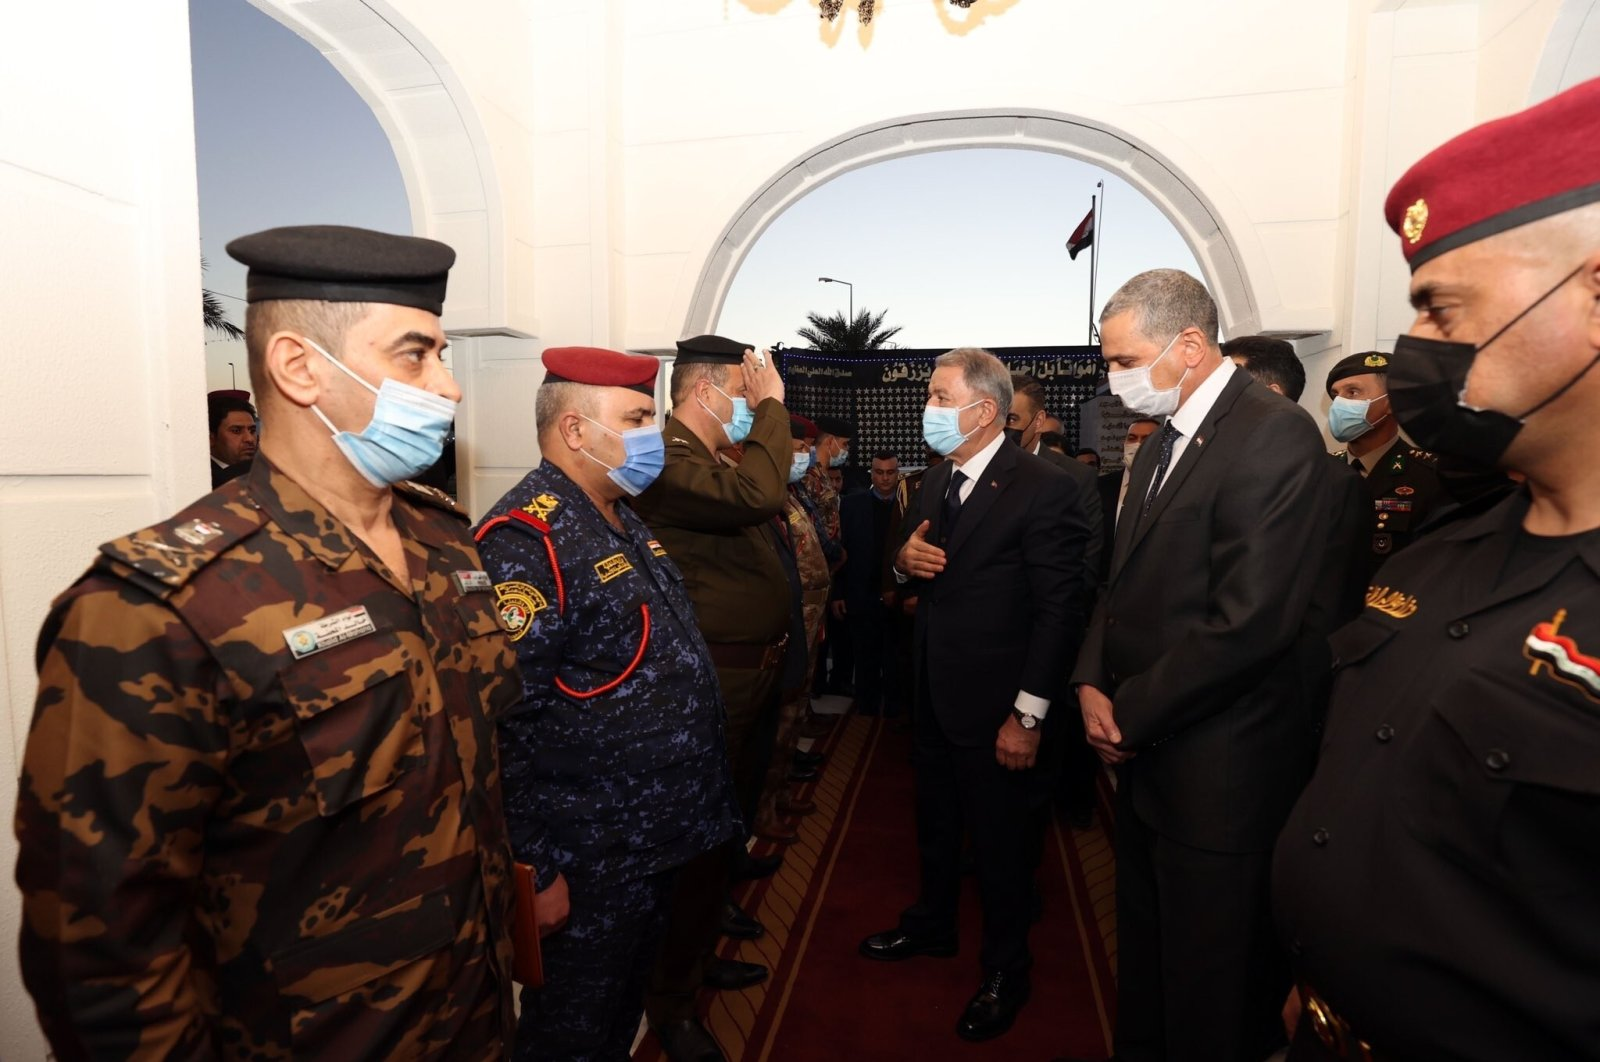 Defense Minister Hulusi Akar, alongside a Turkish delegation, meets with Iraqi Interior Minister Othman al-Ghanmi and Iraqi soldiers during a visit to Baghdad, Iraq, Jan. 18, 2021. (IHA Photo)